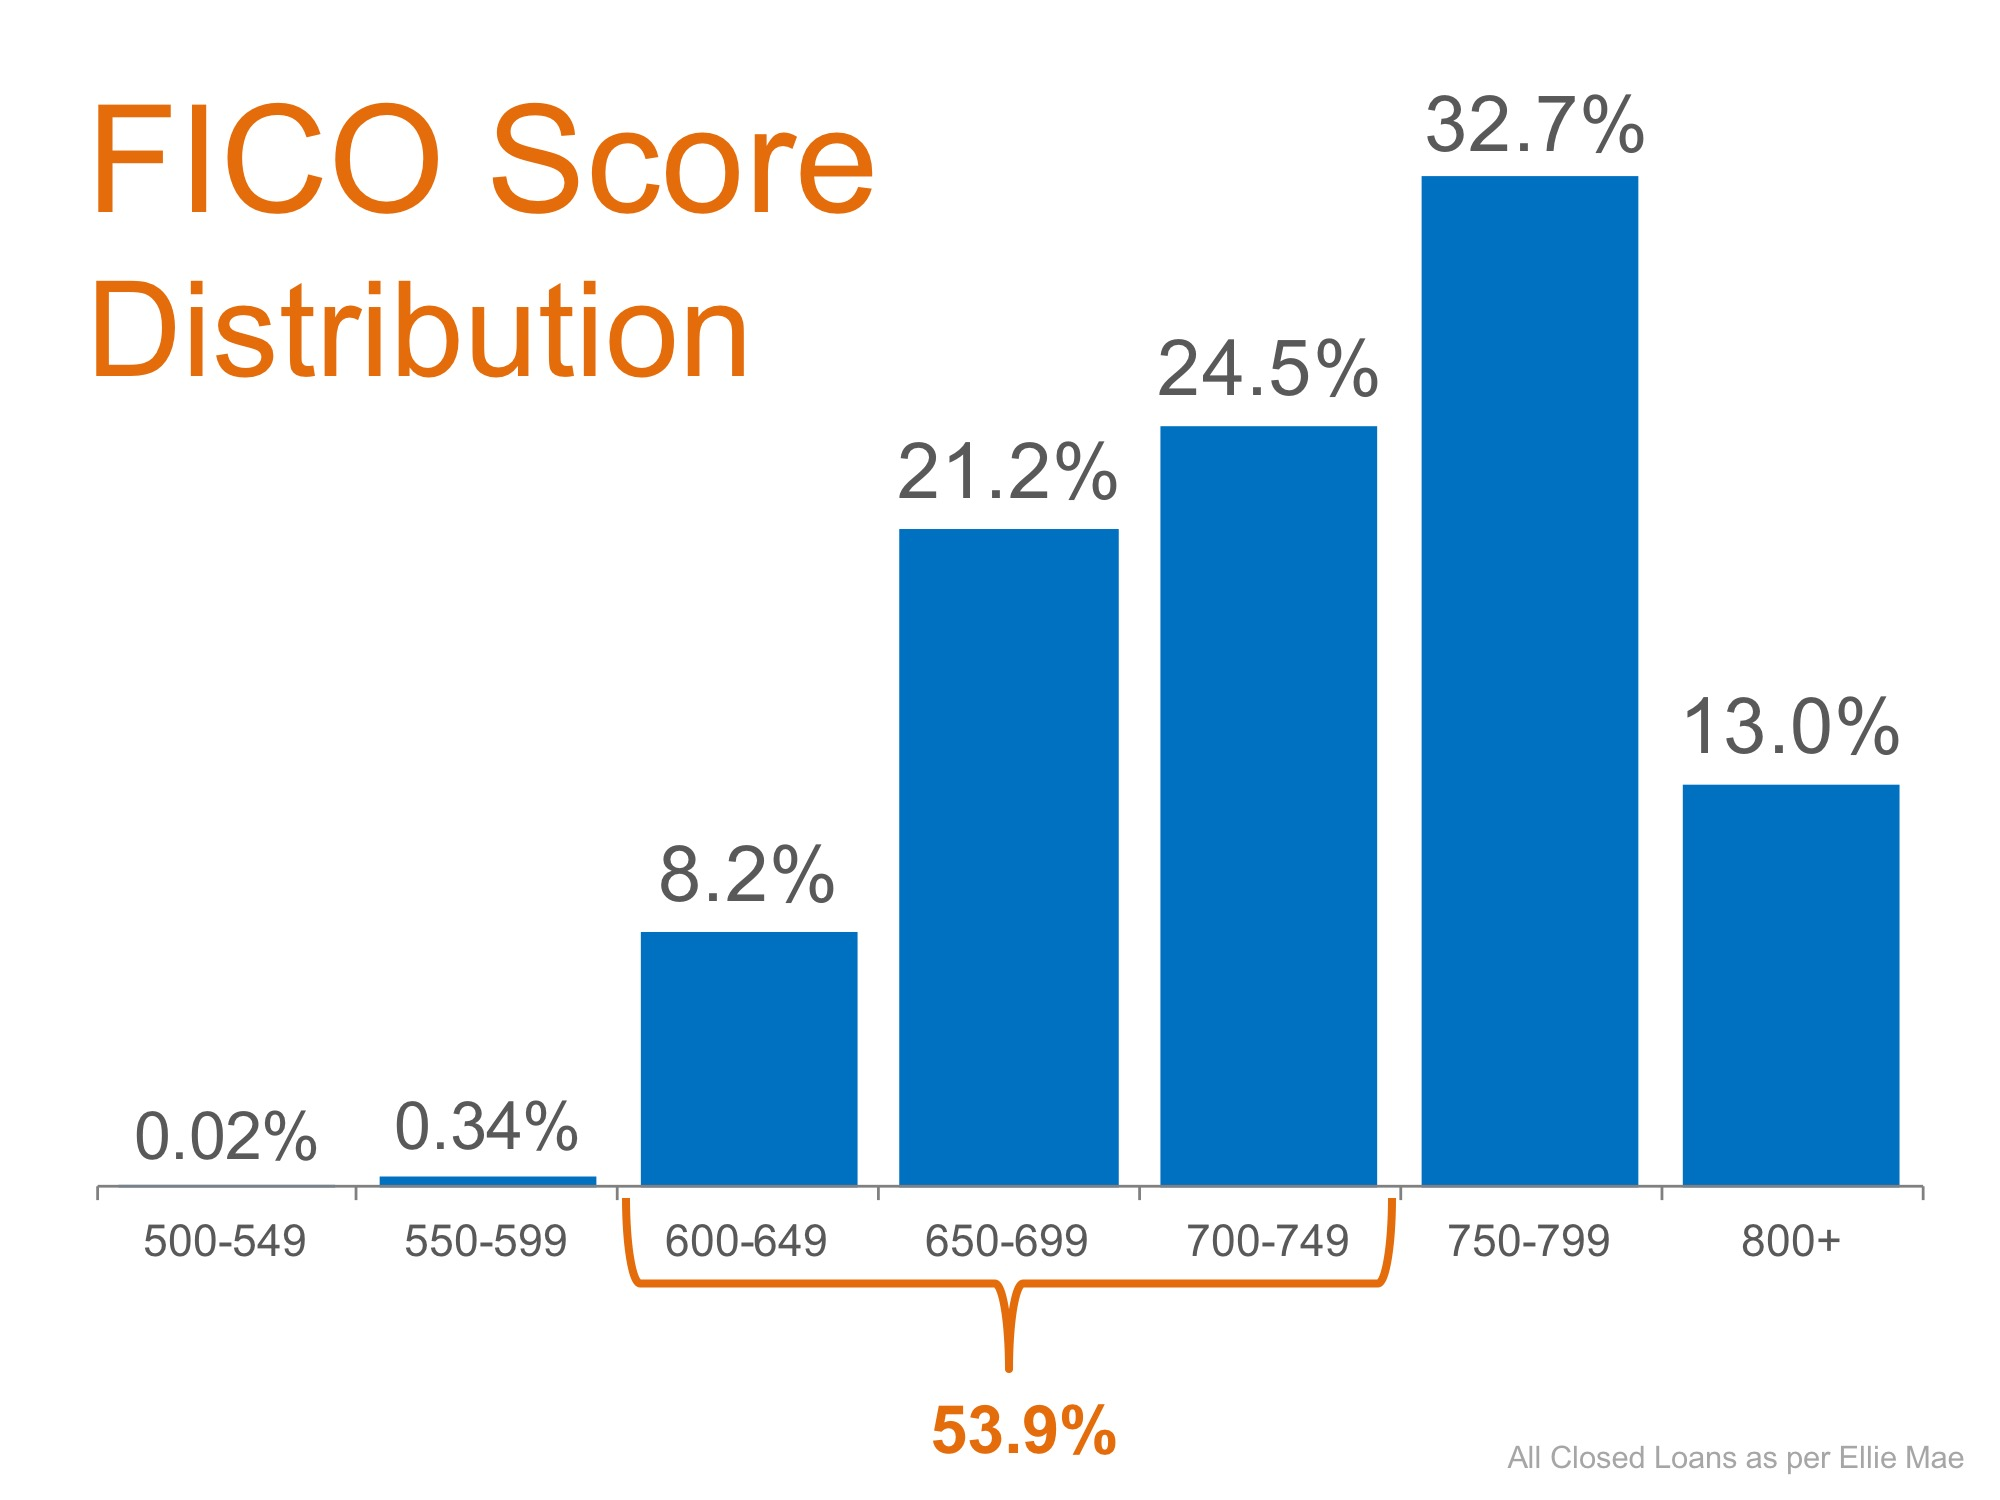 Don't Disqualify Yourself… Over Half of All Loans Approved Have a FICO Score Under 750 | Simplifying The Market